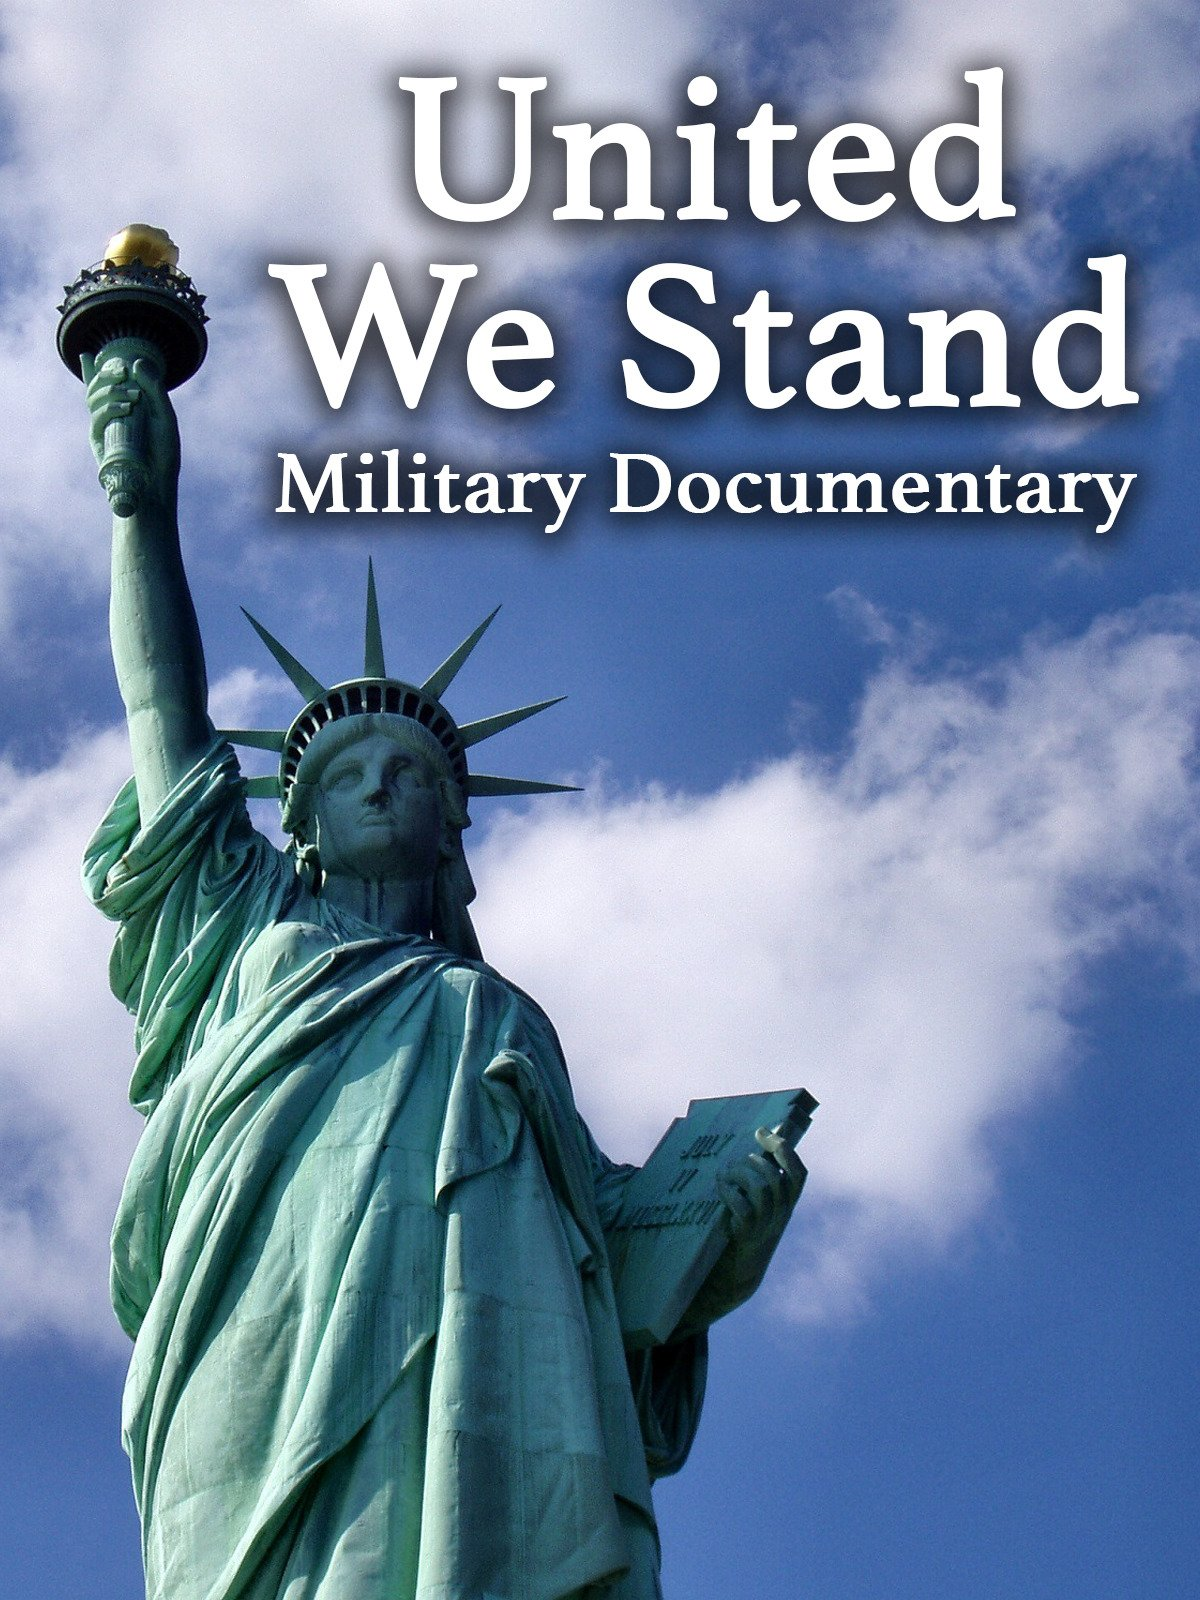 United We Stand: Military Documentary